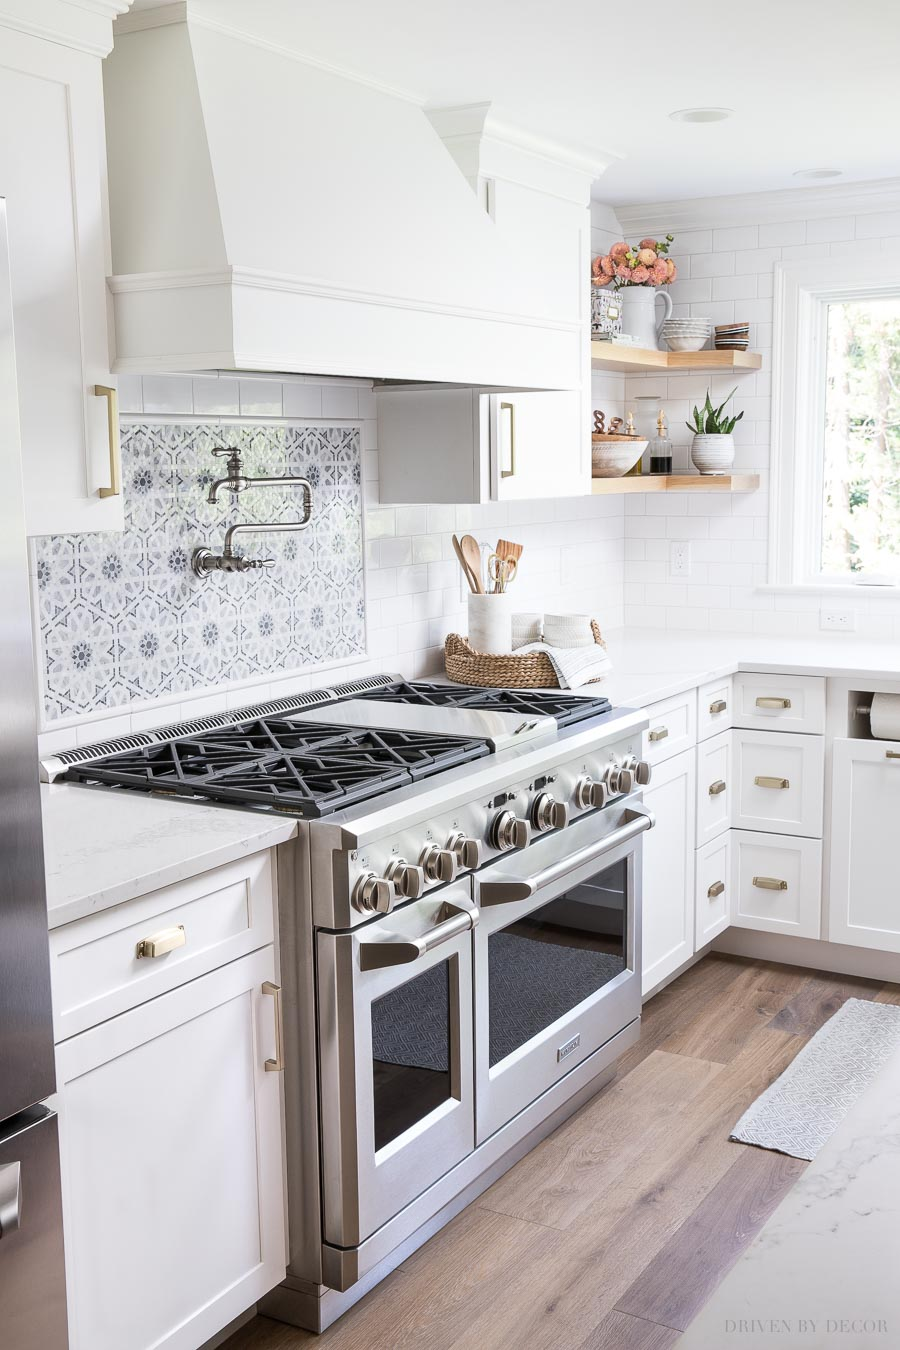 Super gorgeous and functional range with six burners and double ovens. The small oven is perfect for most family meals!